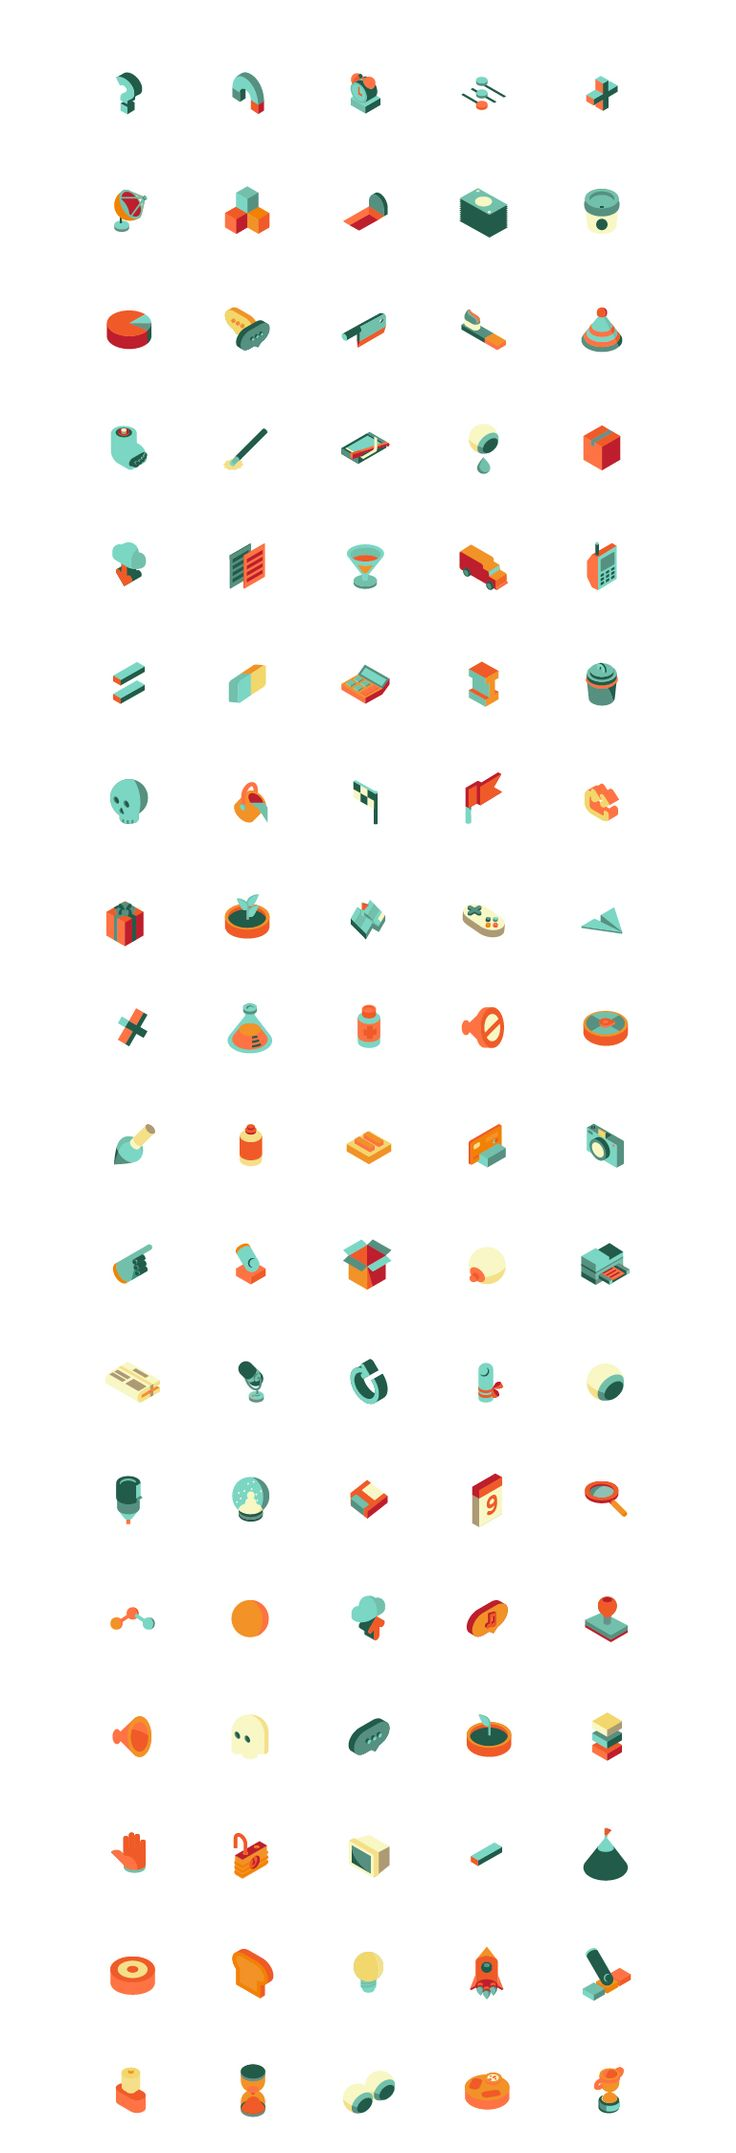 Isometric icons on Behance